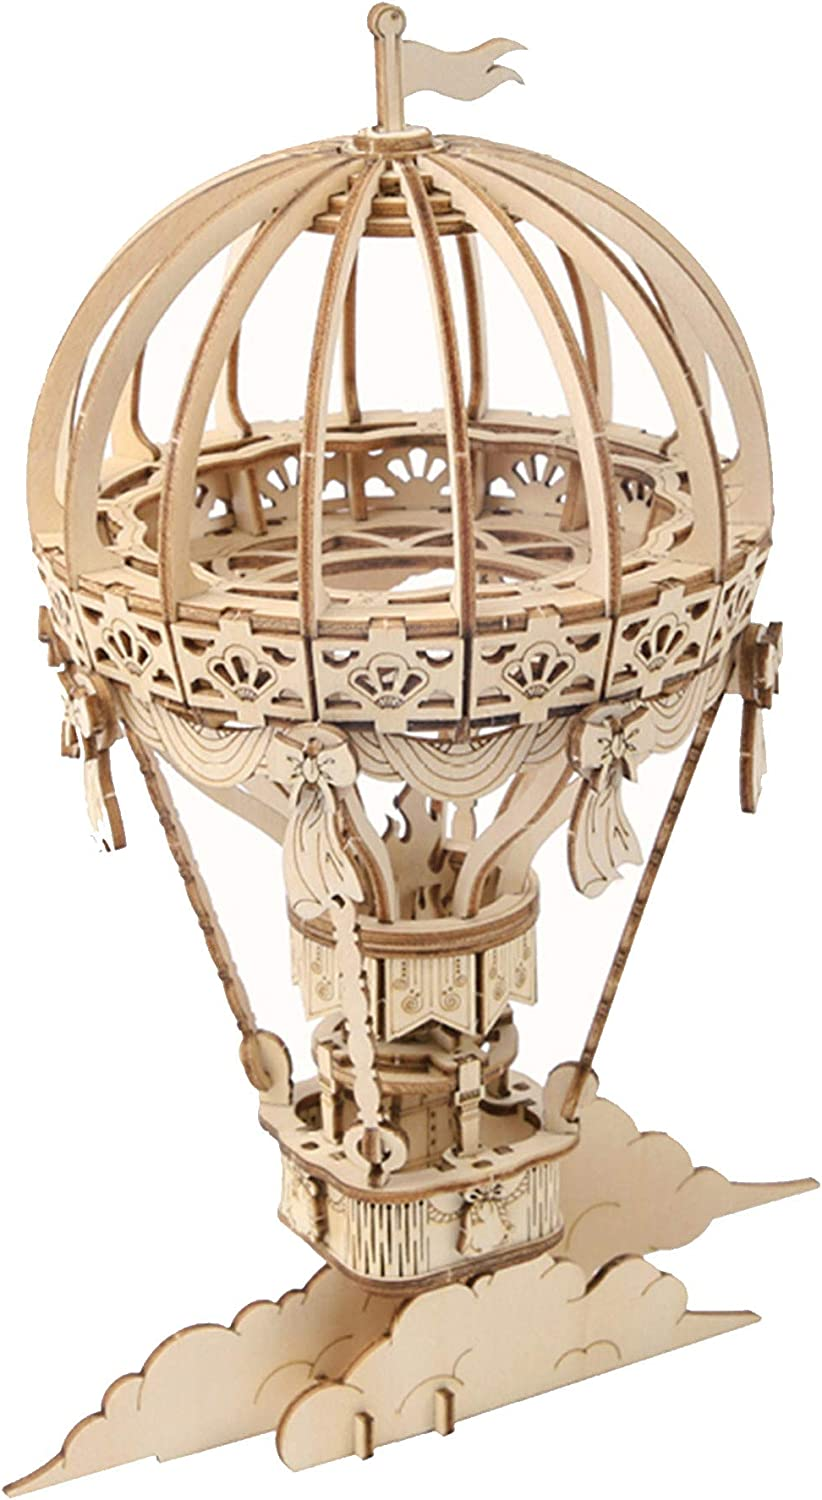 Hands Craft Hot Air Balloon DIY 3D Wooden Puzzle Model Kit - Laser Cut Wood Pieces, Brain Teaser and Educational STEM Building Model Toy (TG406)